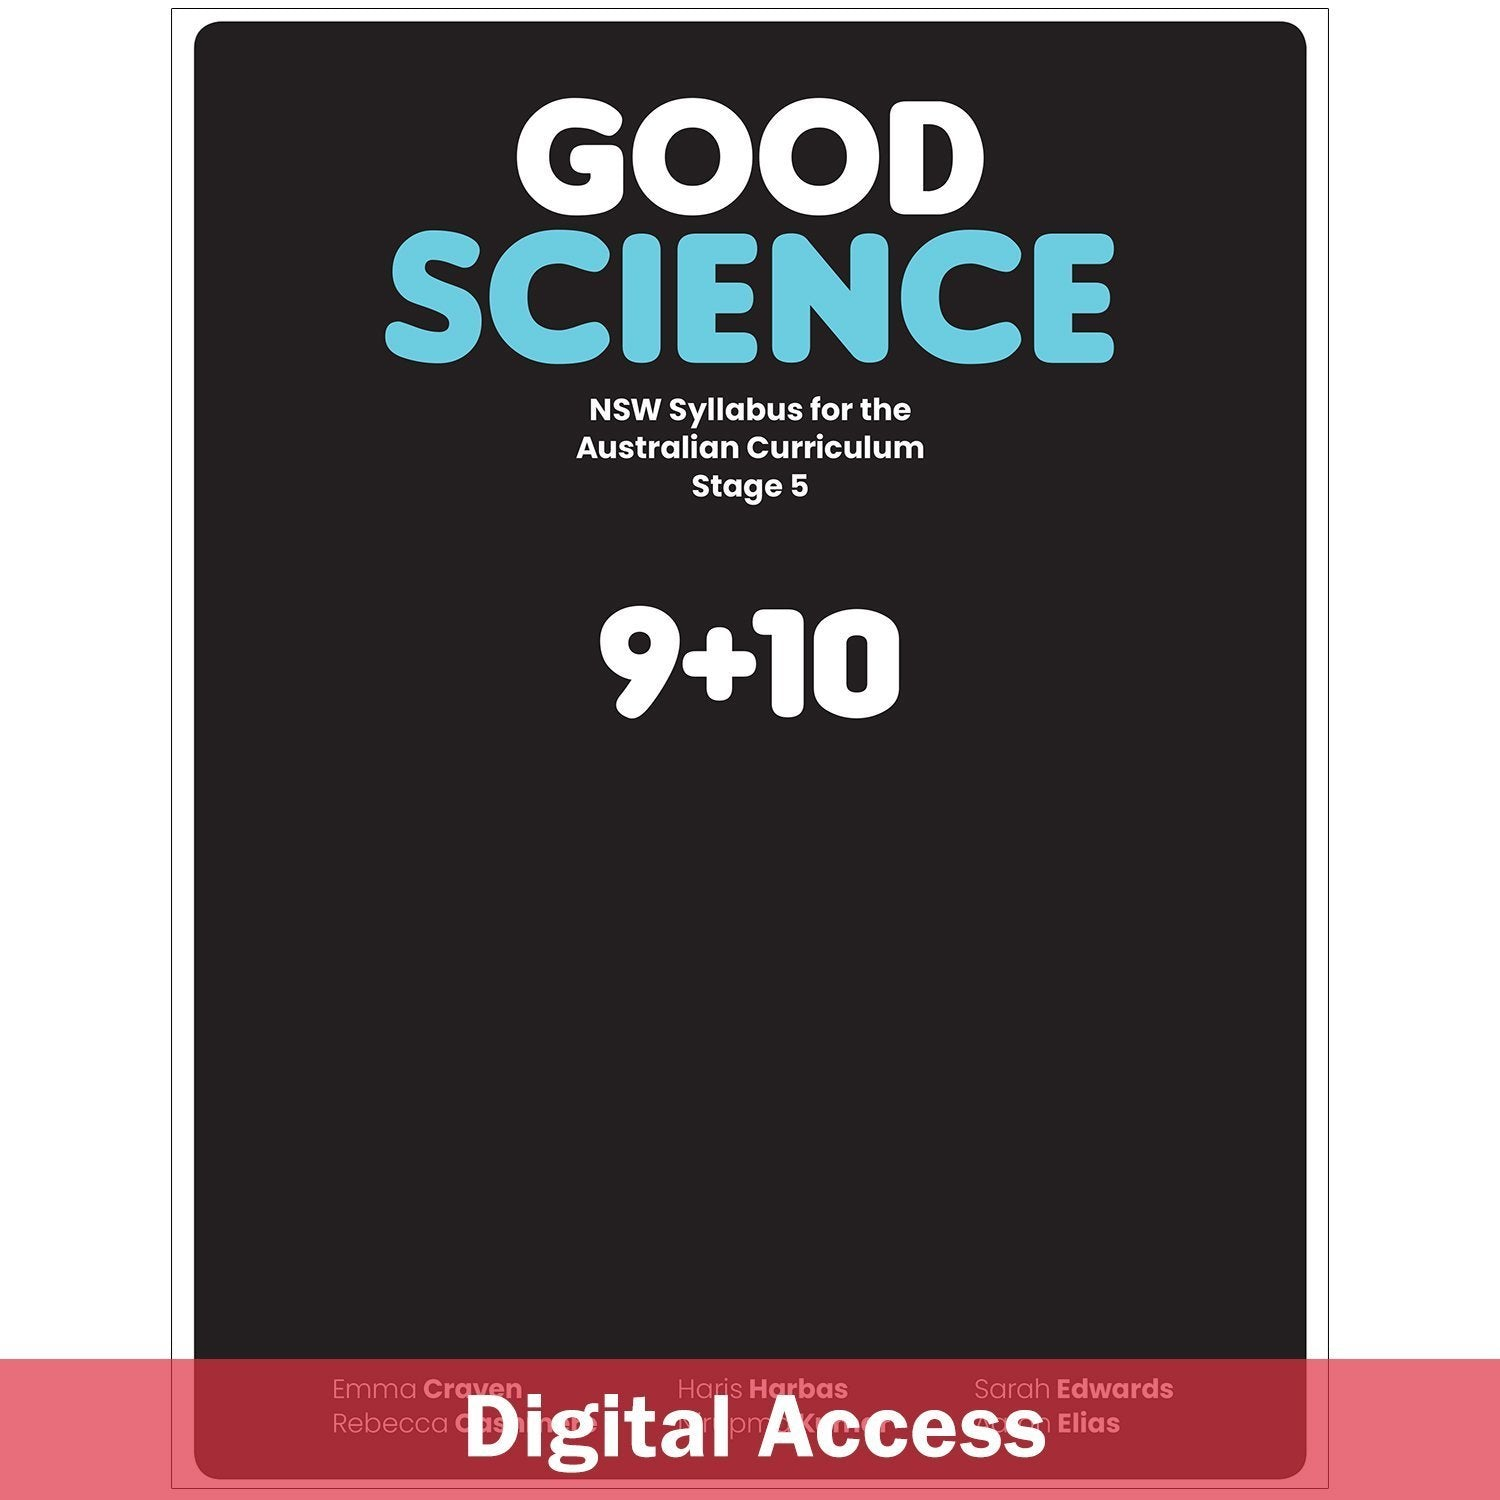 Good Science NSW Syllabus Stage 5 Student Digital Access